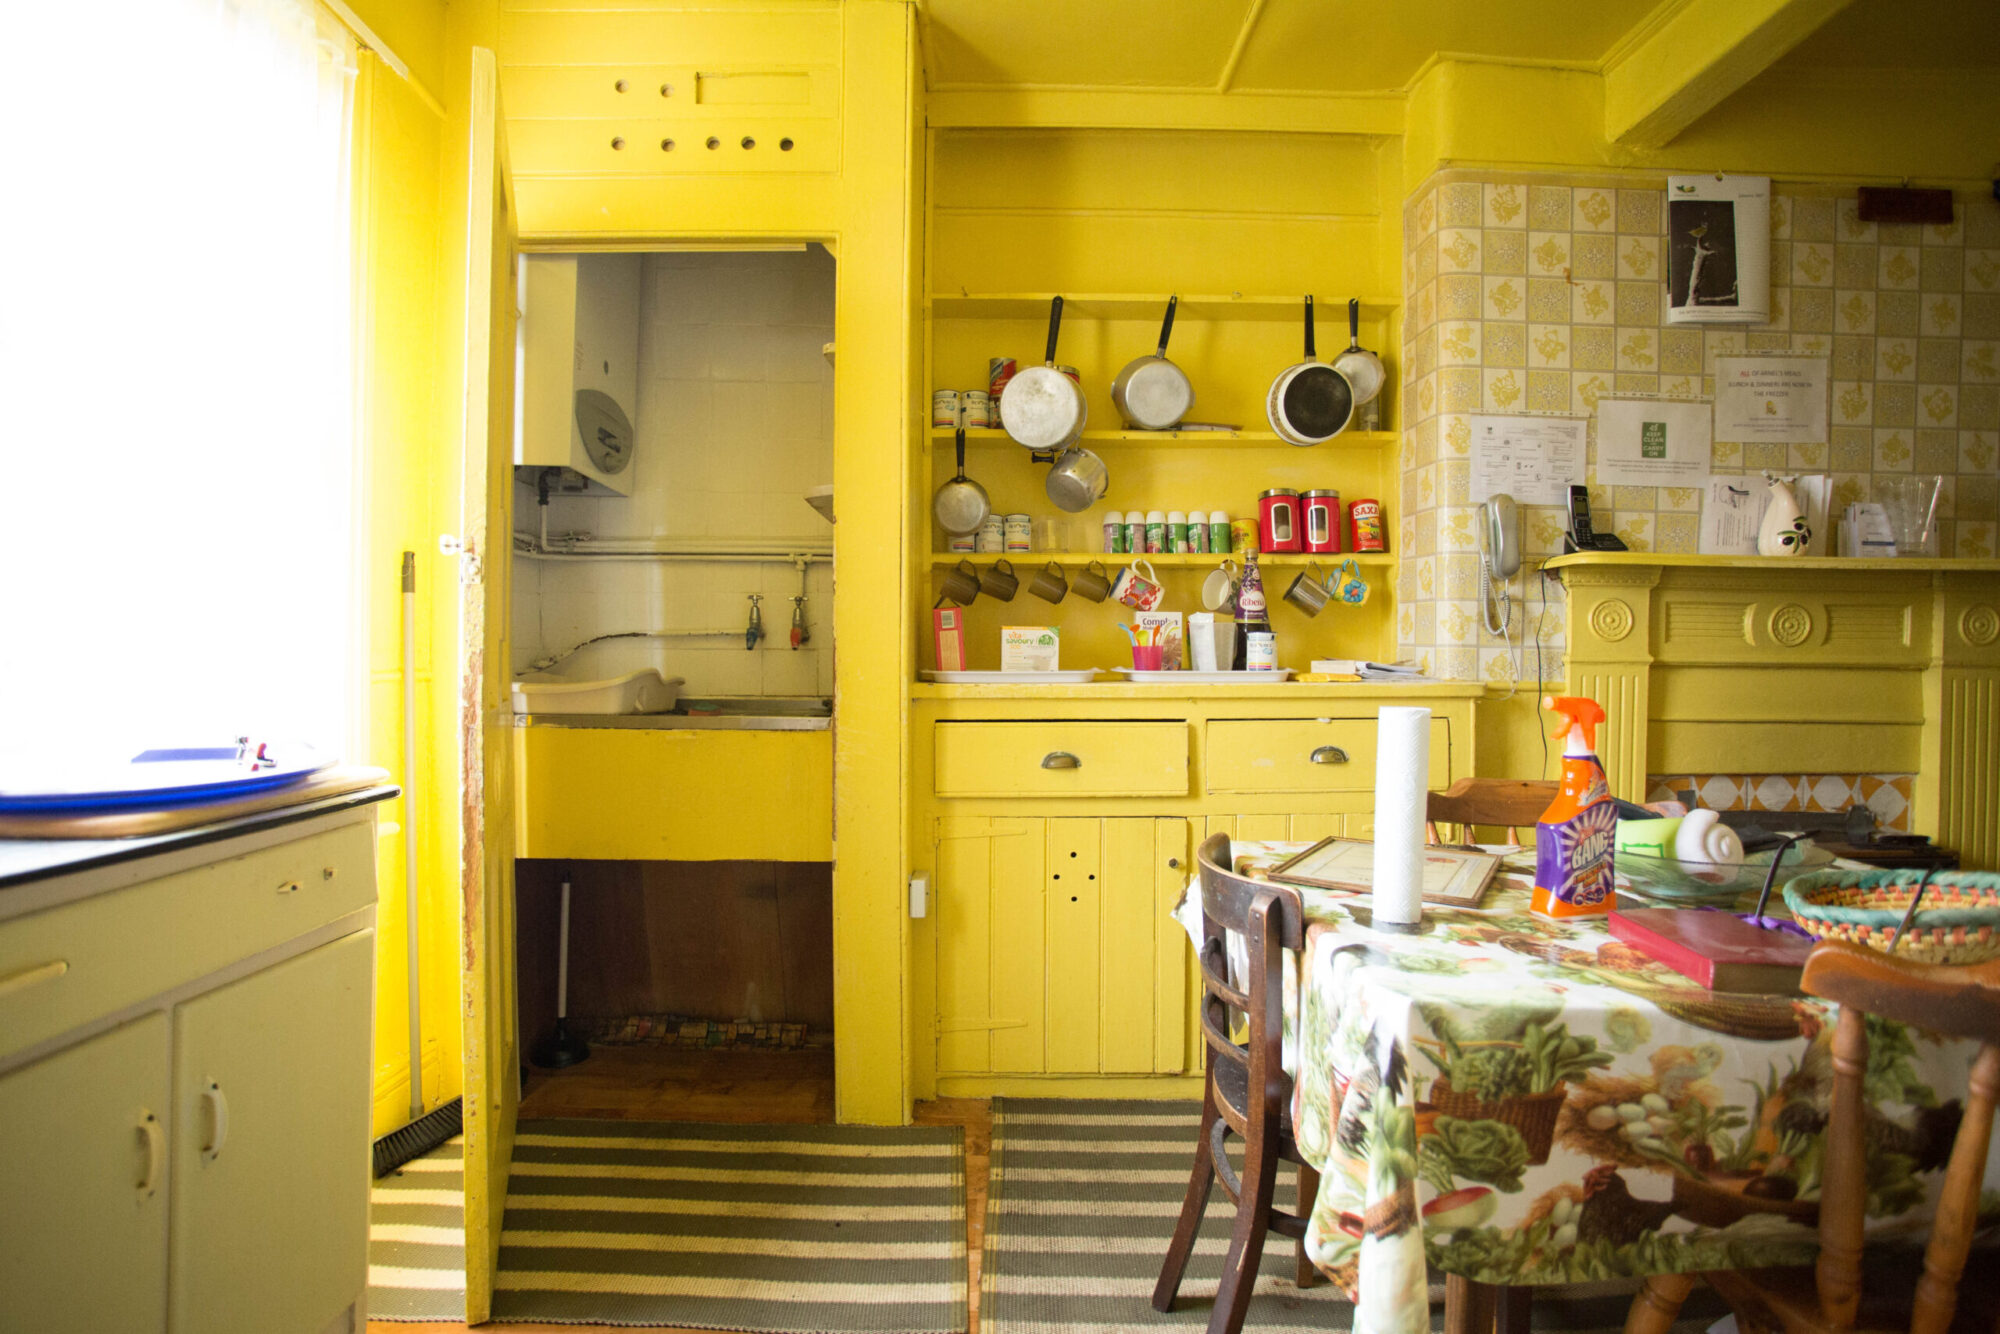 A photo of a kitchen in an old property in need of renovation.